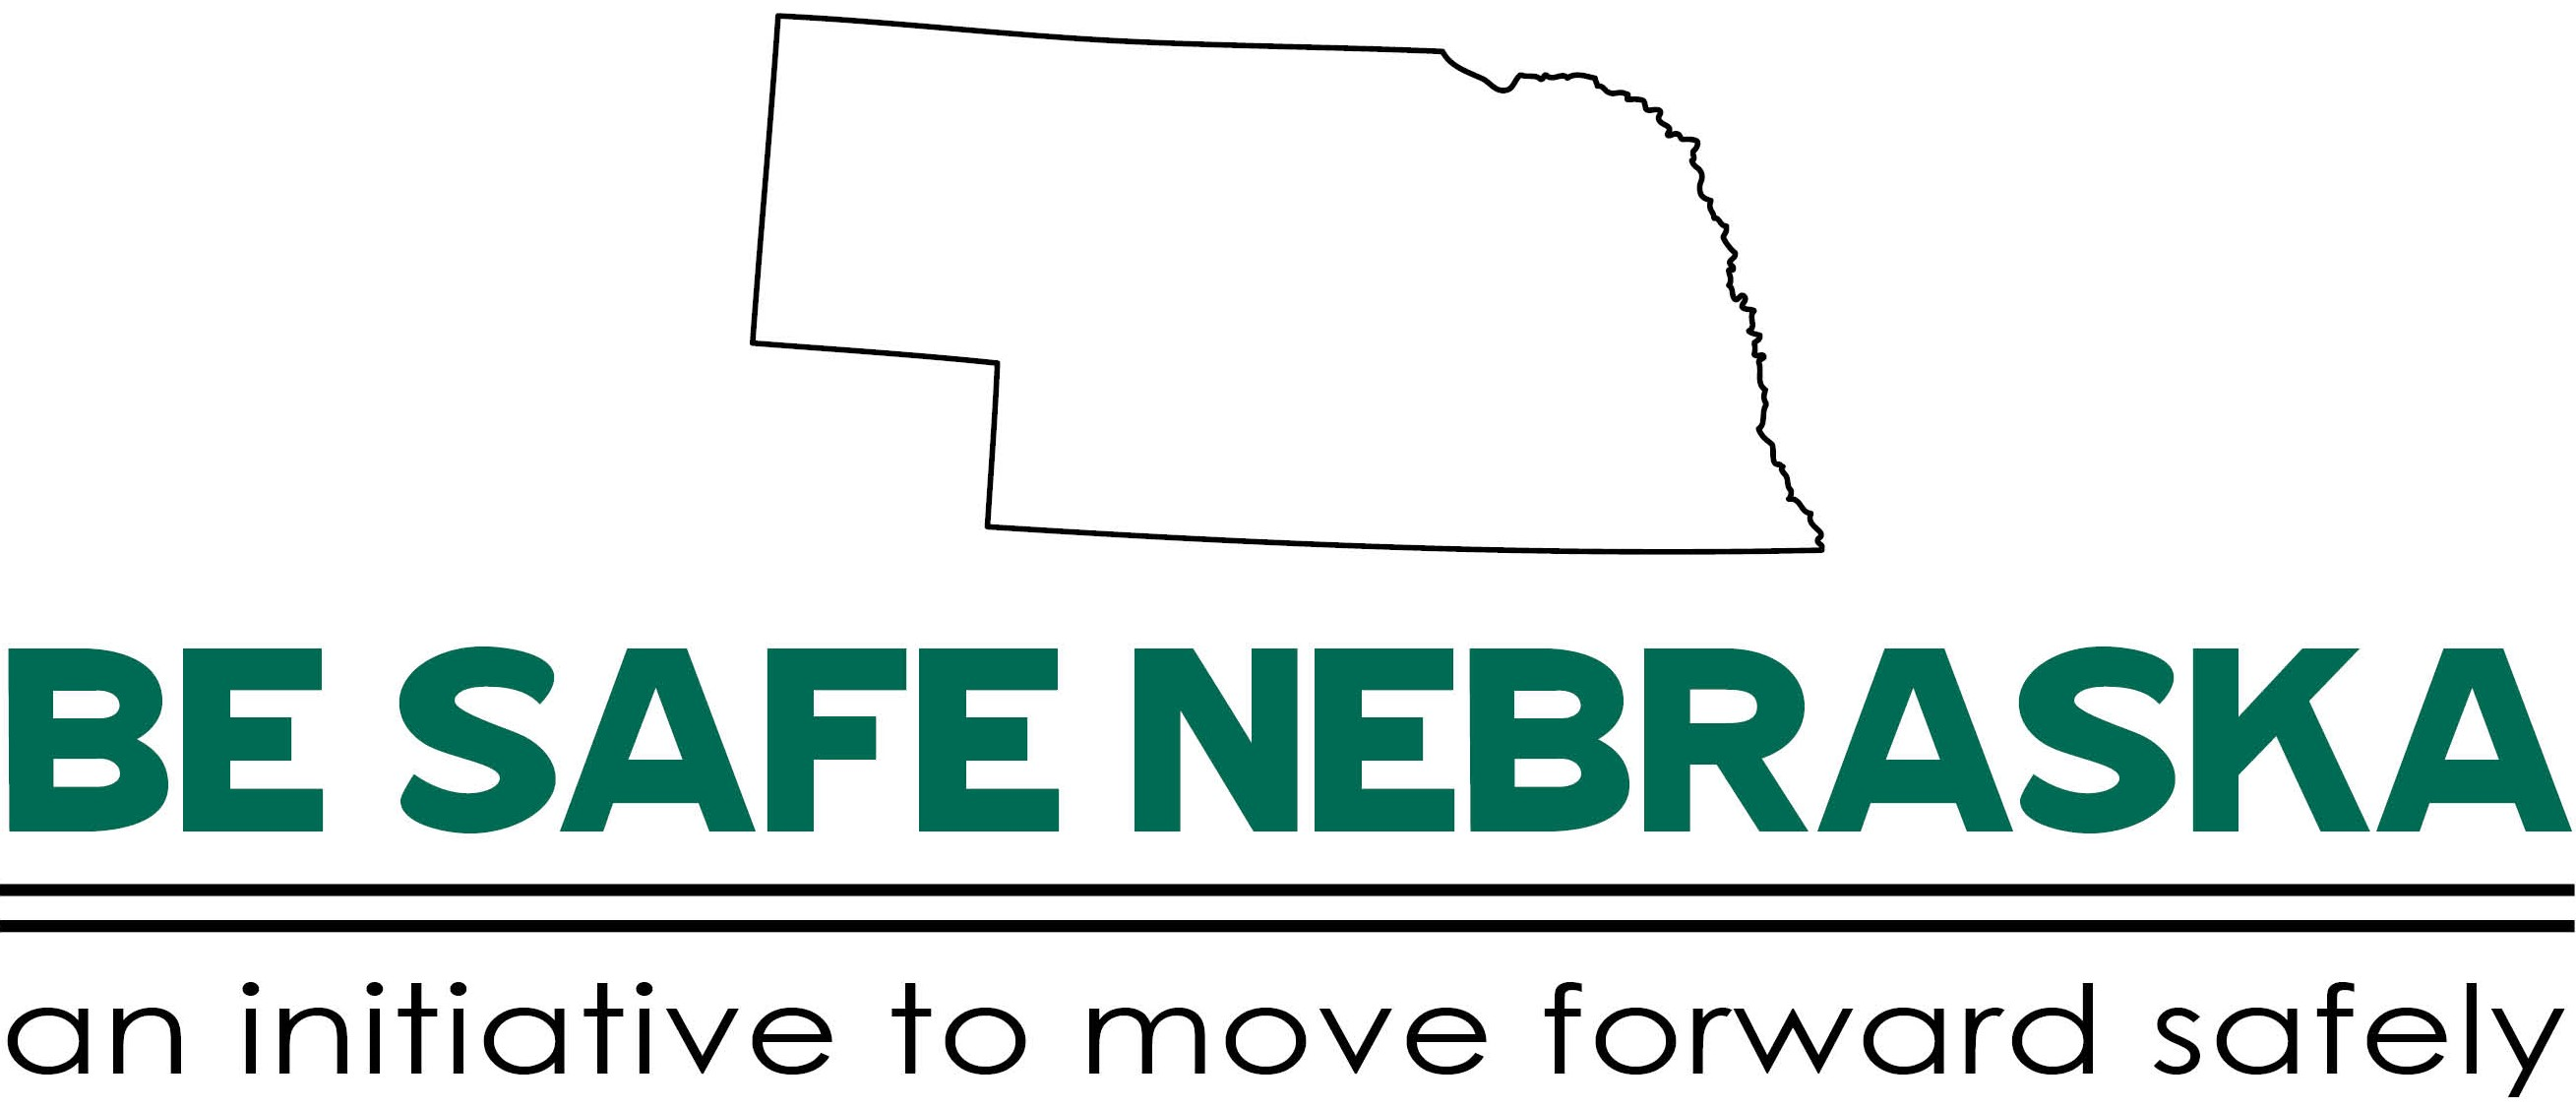 Be Safe Nebraska Logos.jpg